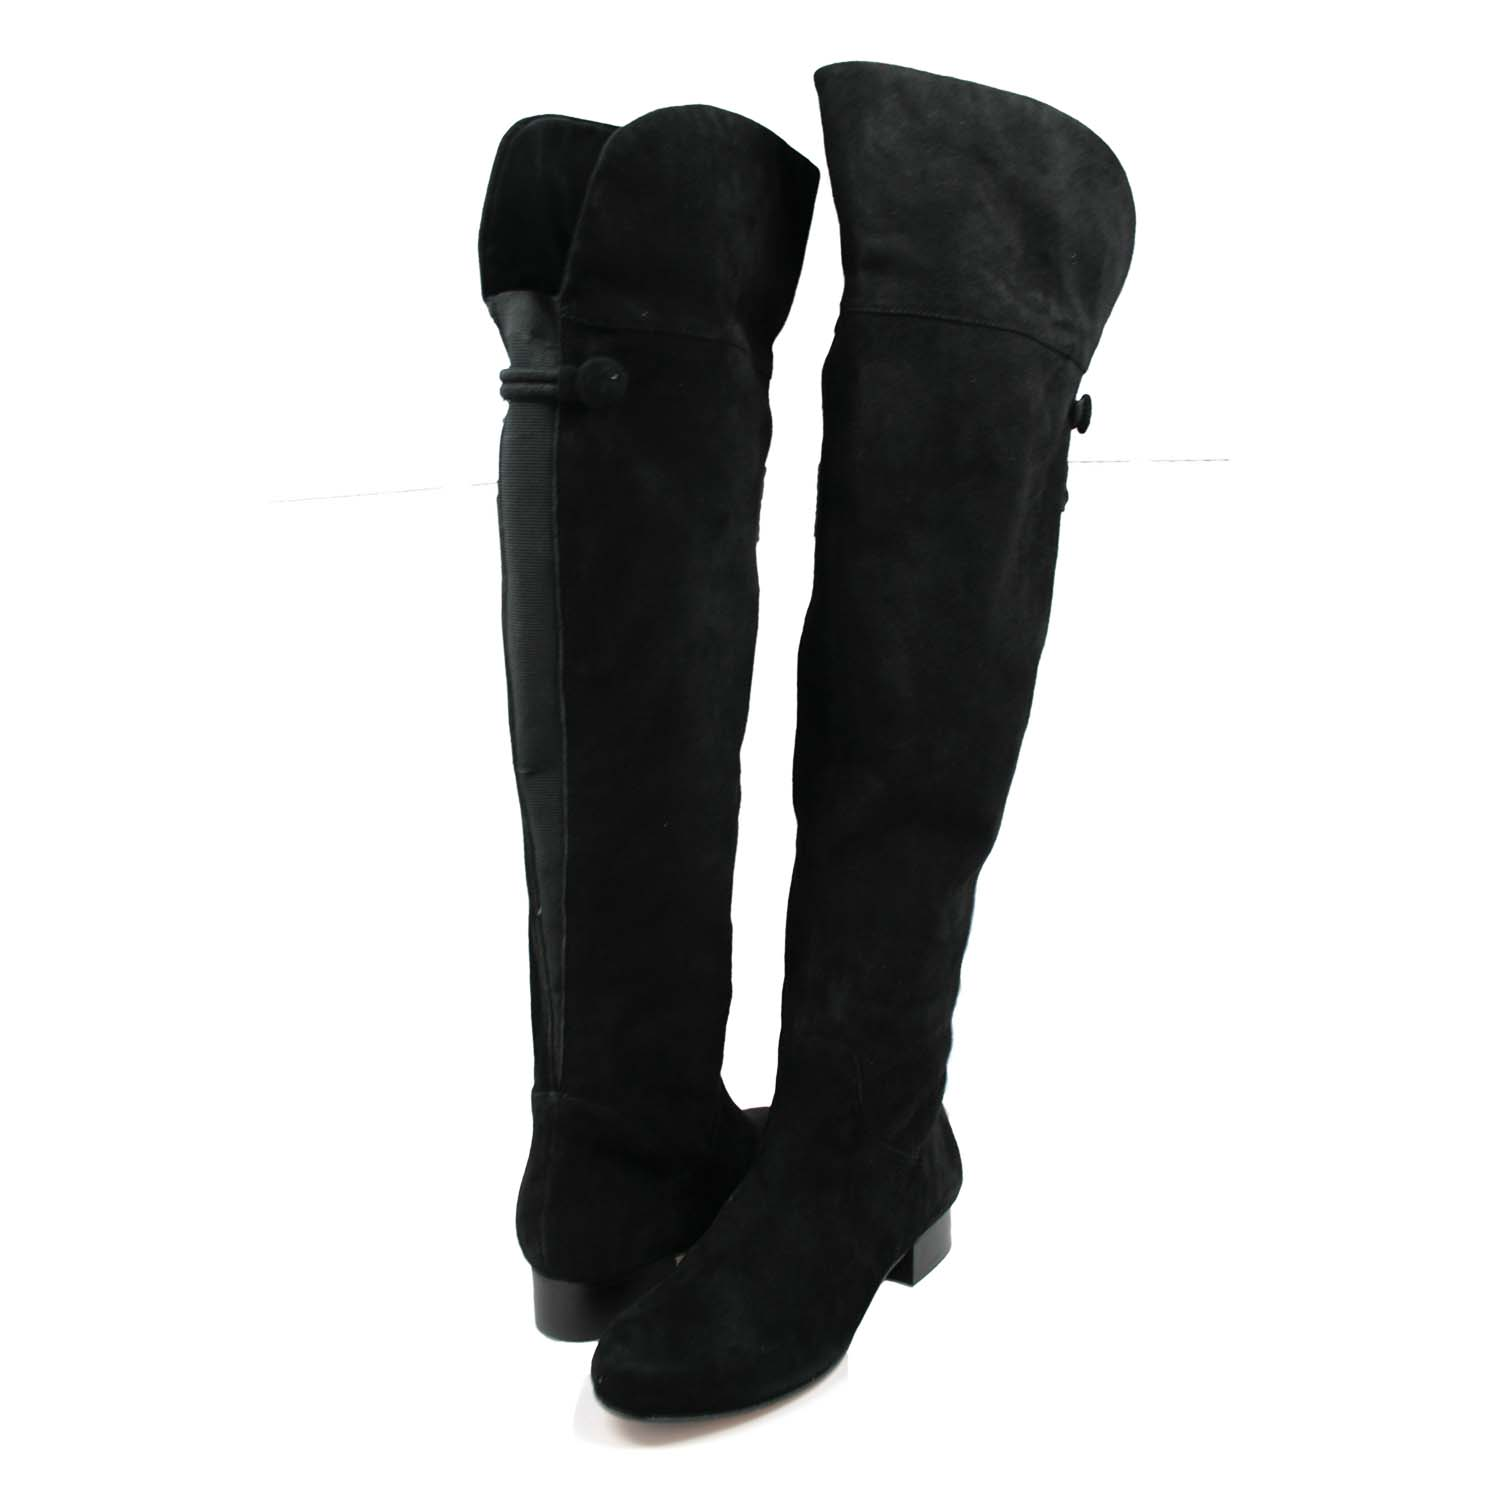 Over The Knee Boots Black Xflcikhw